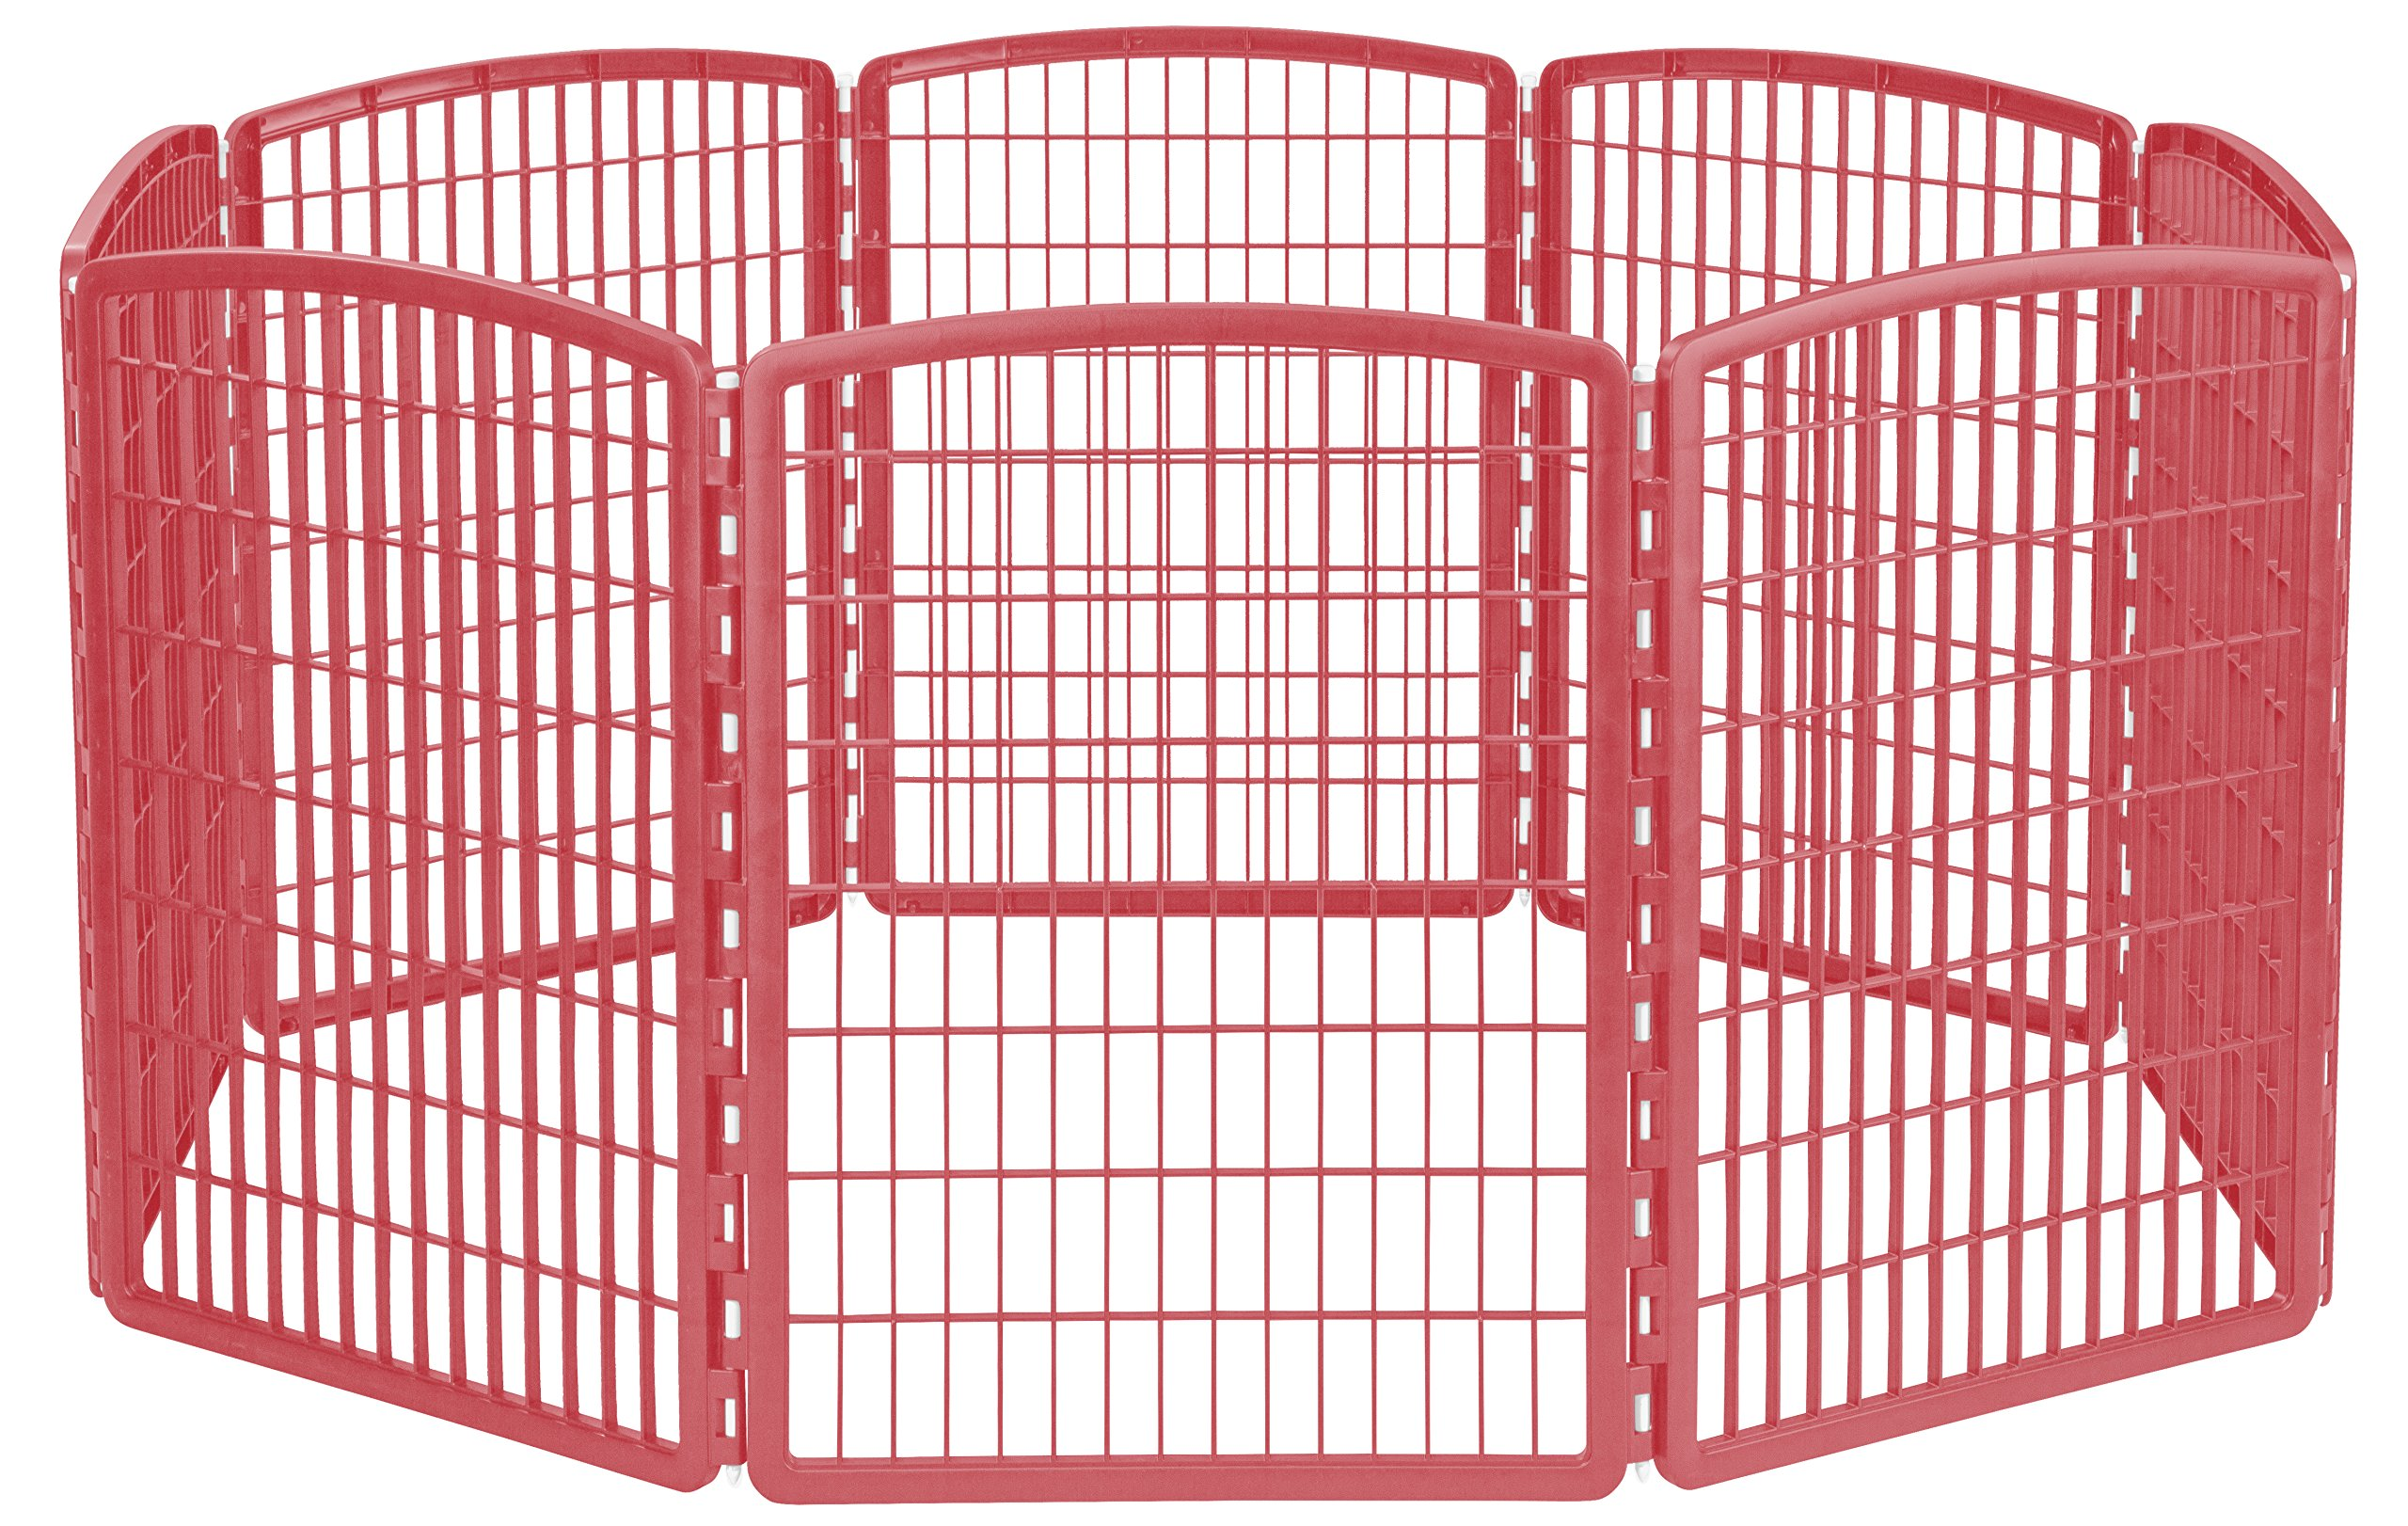 IRIS 34'' Exercise 8-Panel Pet Playpen without Door, Red